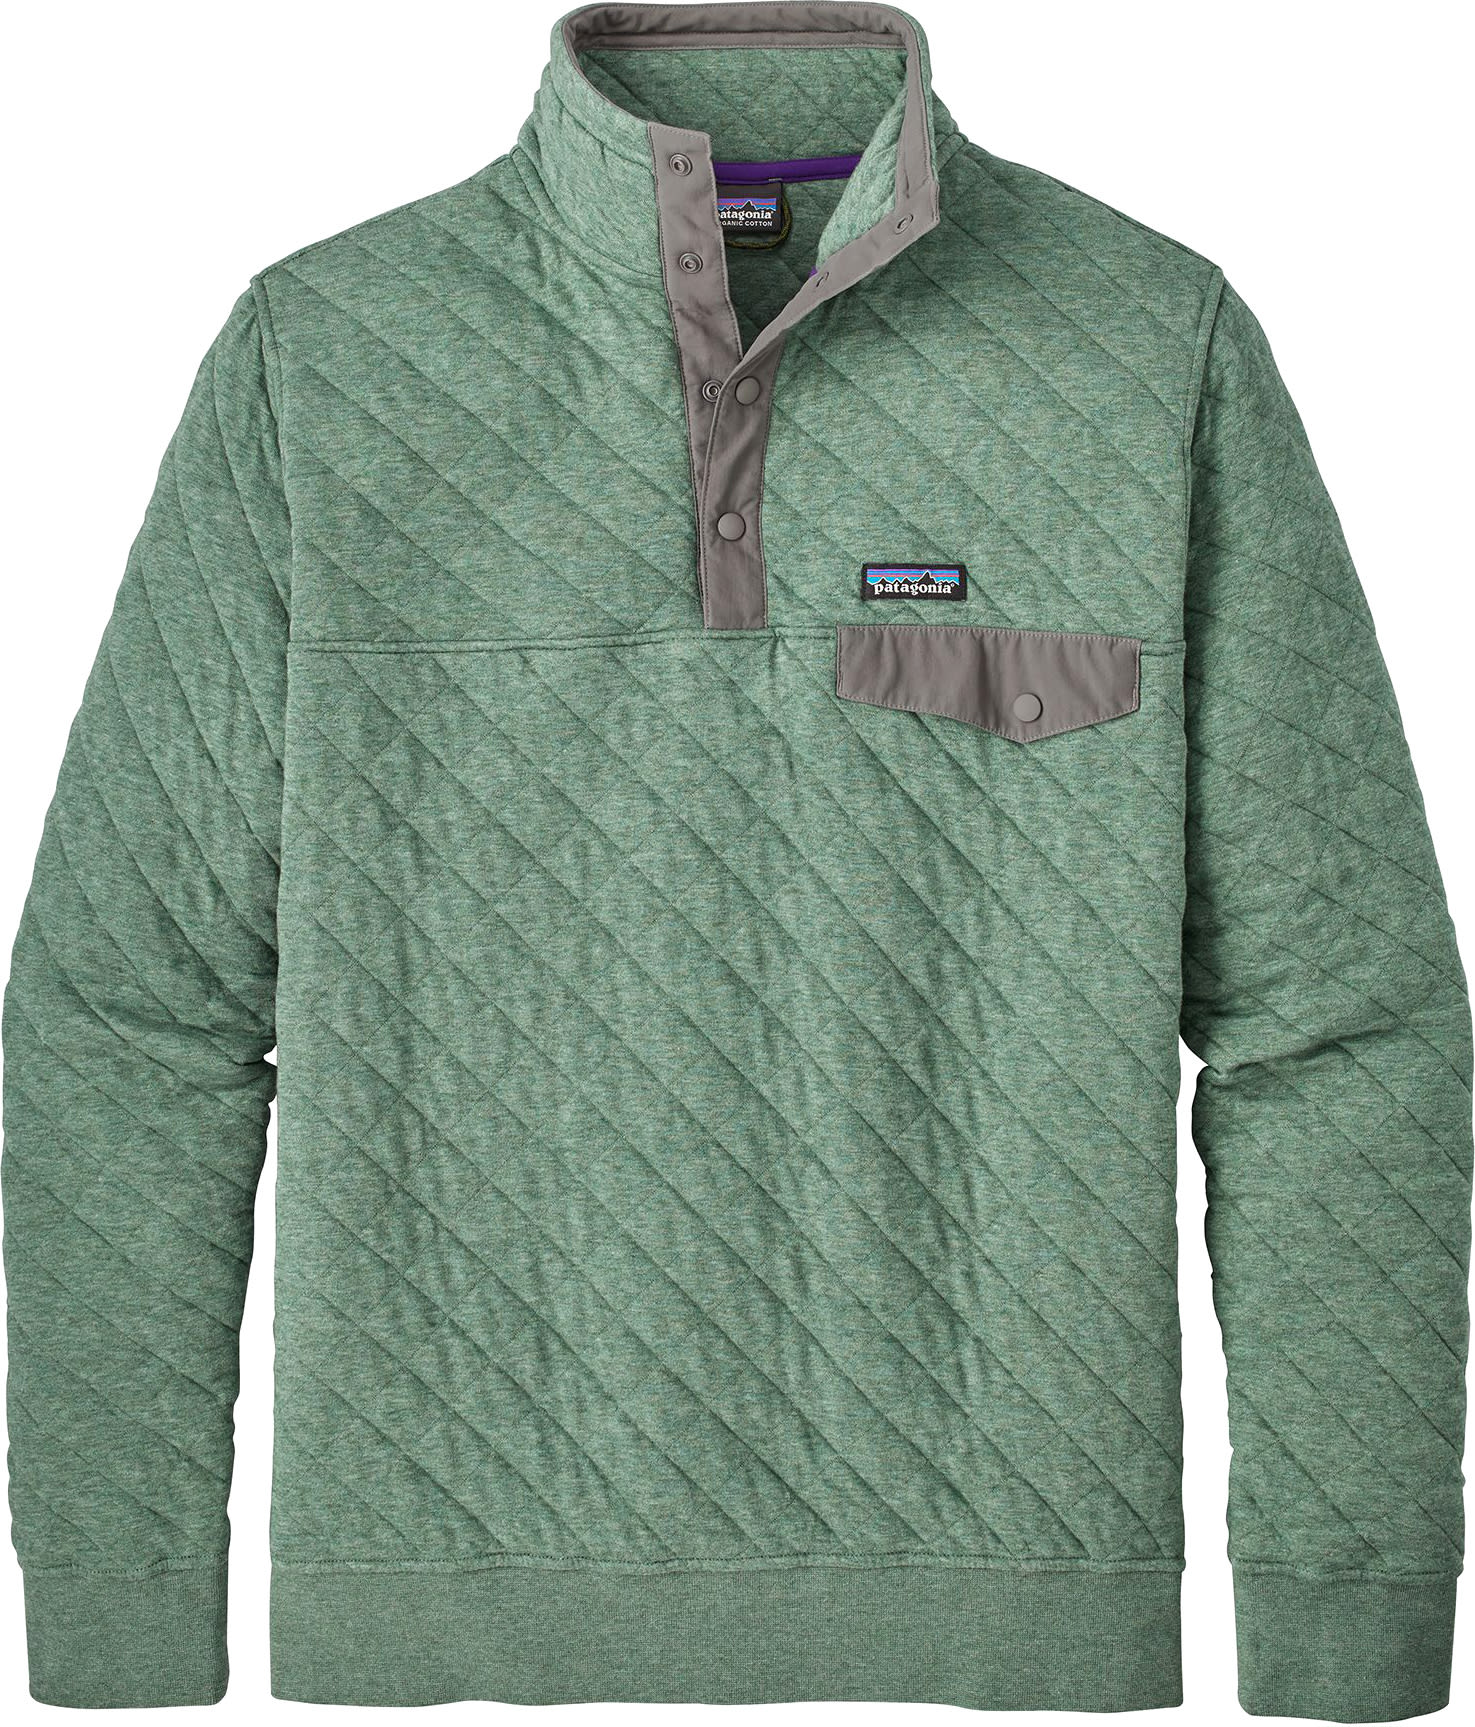 Patagonia Cotton Quilt Snap T Pullover Fleece